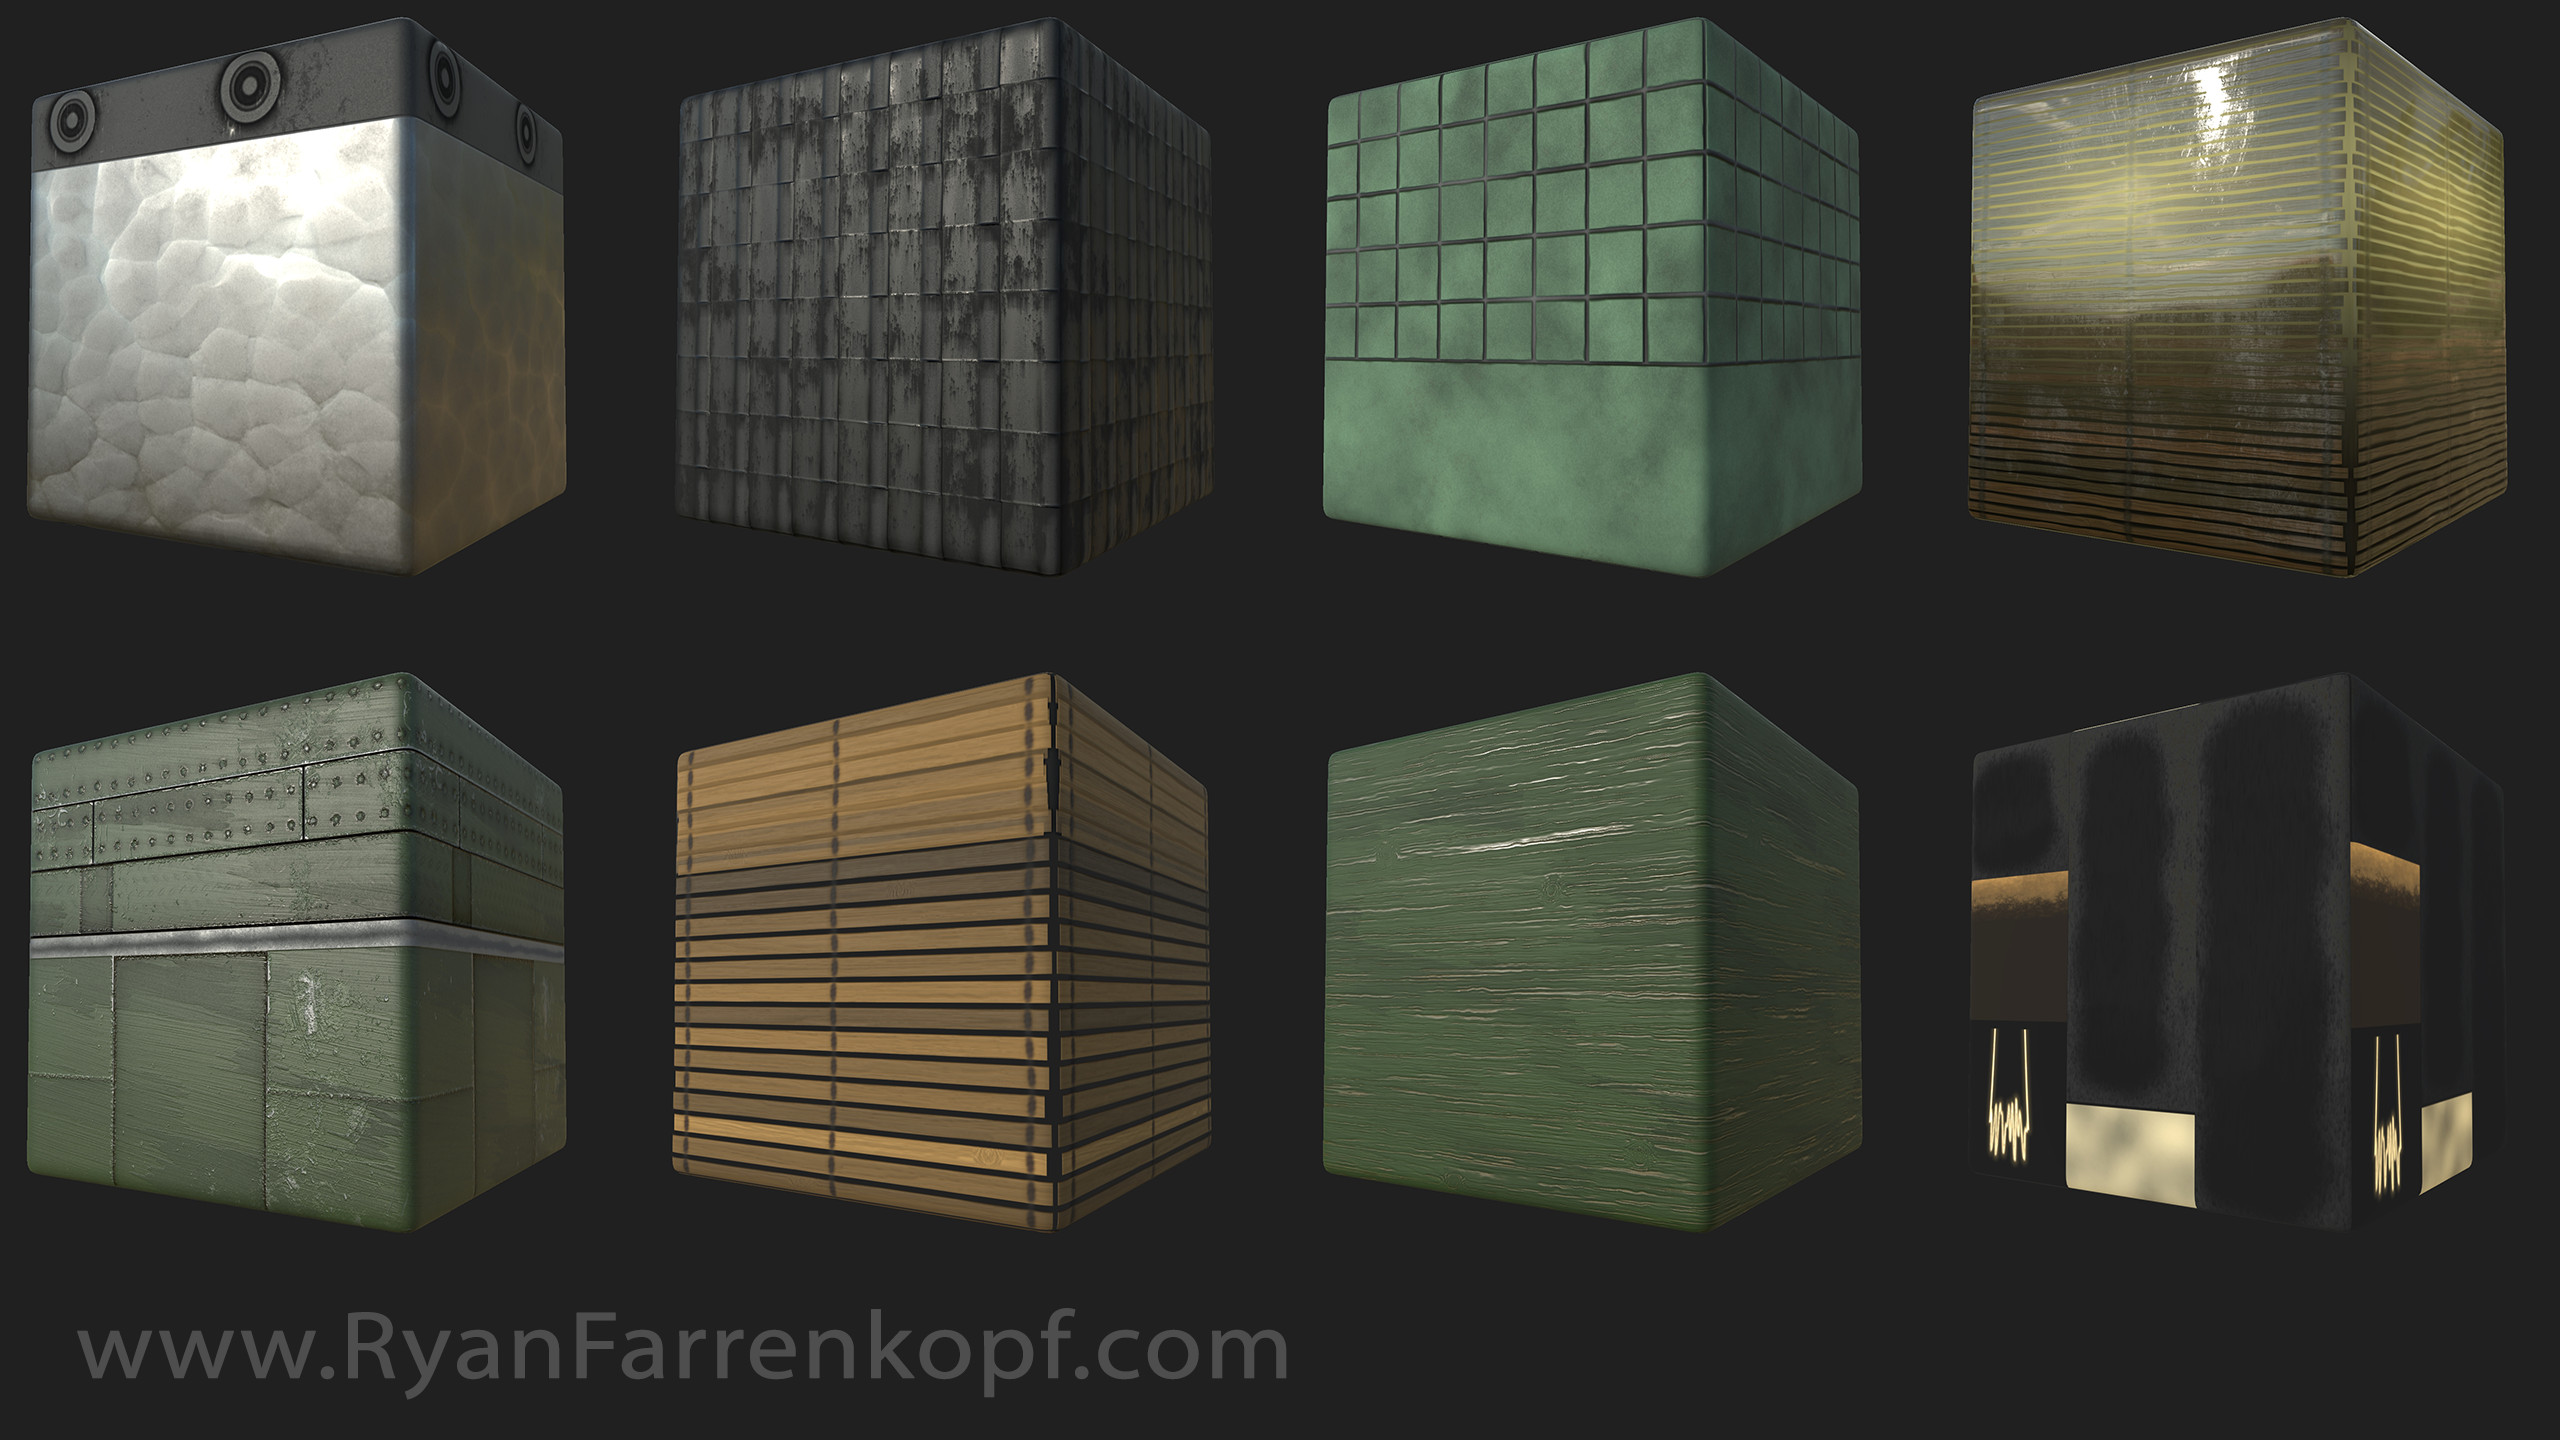 Material trimsheets used for the house. Created instances in Unity to create variety.